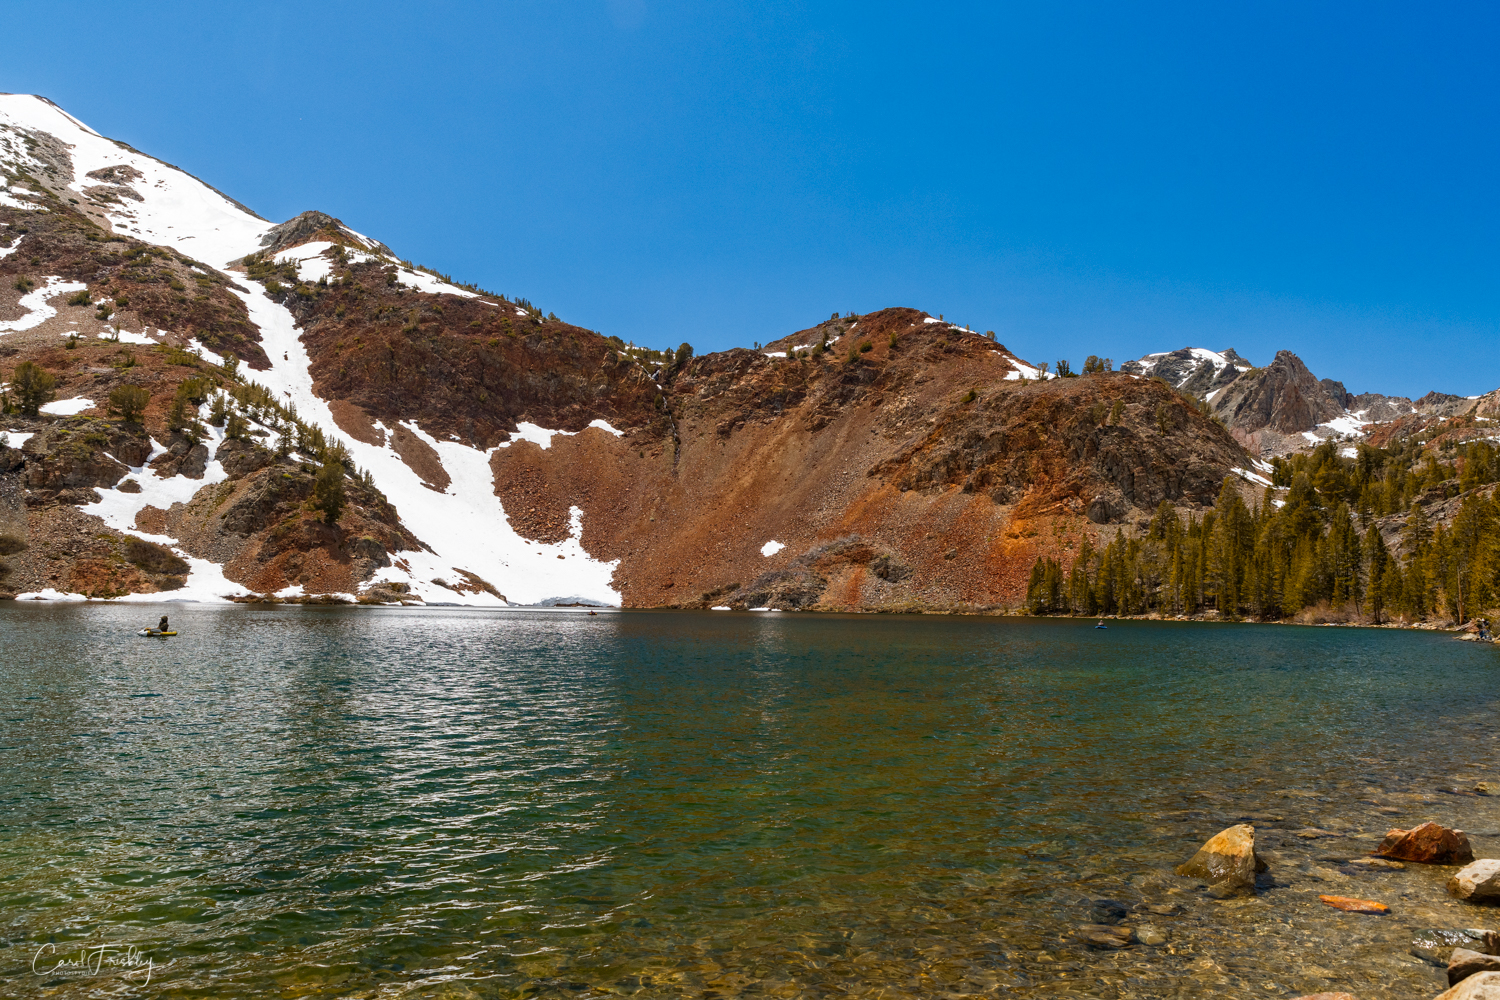 The lake is popular with anglers, hikers and campers. There is a trailhead near the lake that serves as one of several gateways into Yosemite National Park and other great hikes in the Sierra Nevada, including the Pacific Crest and John Muir Trails.